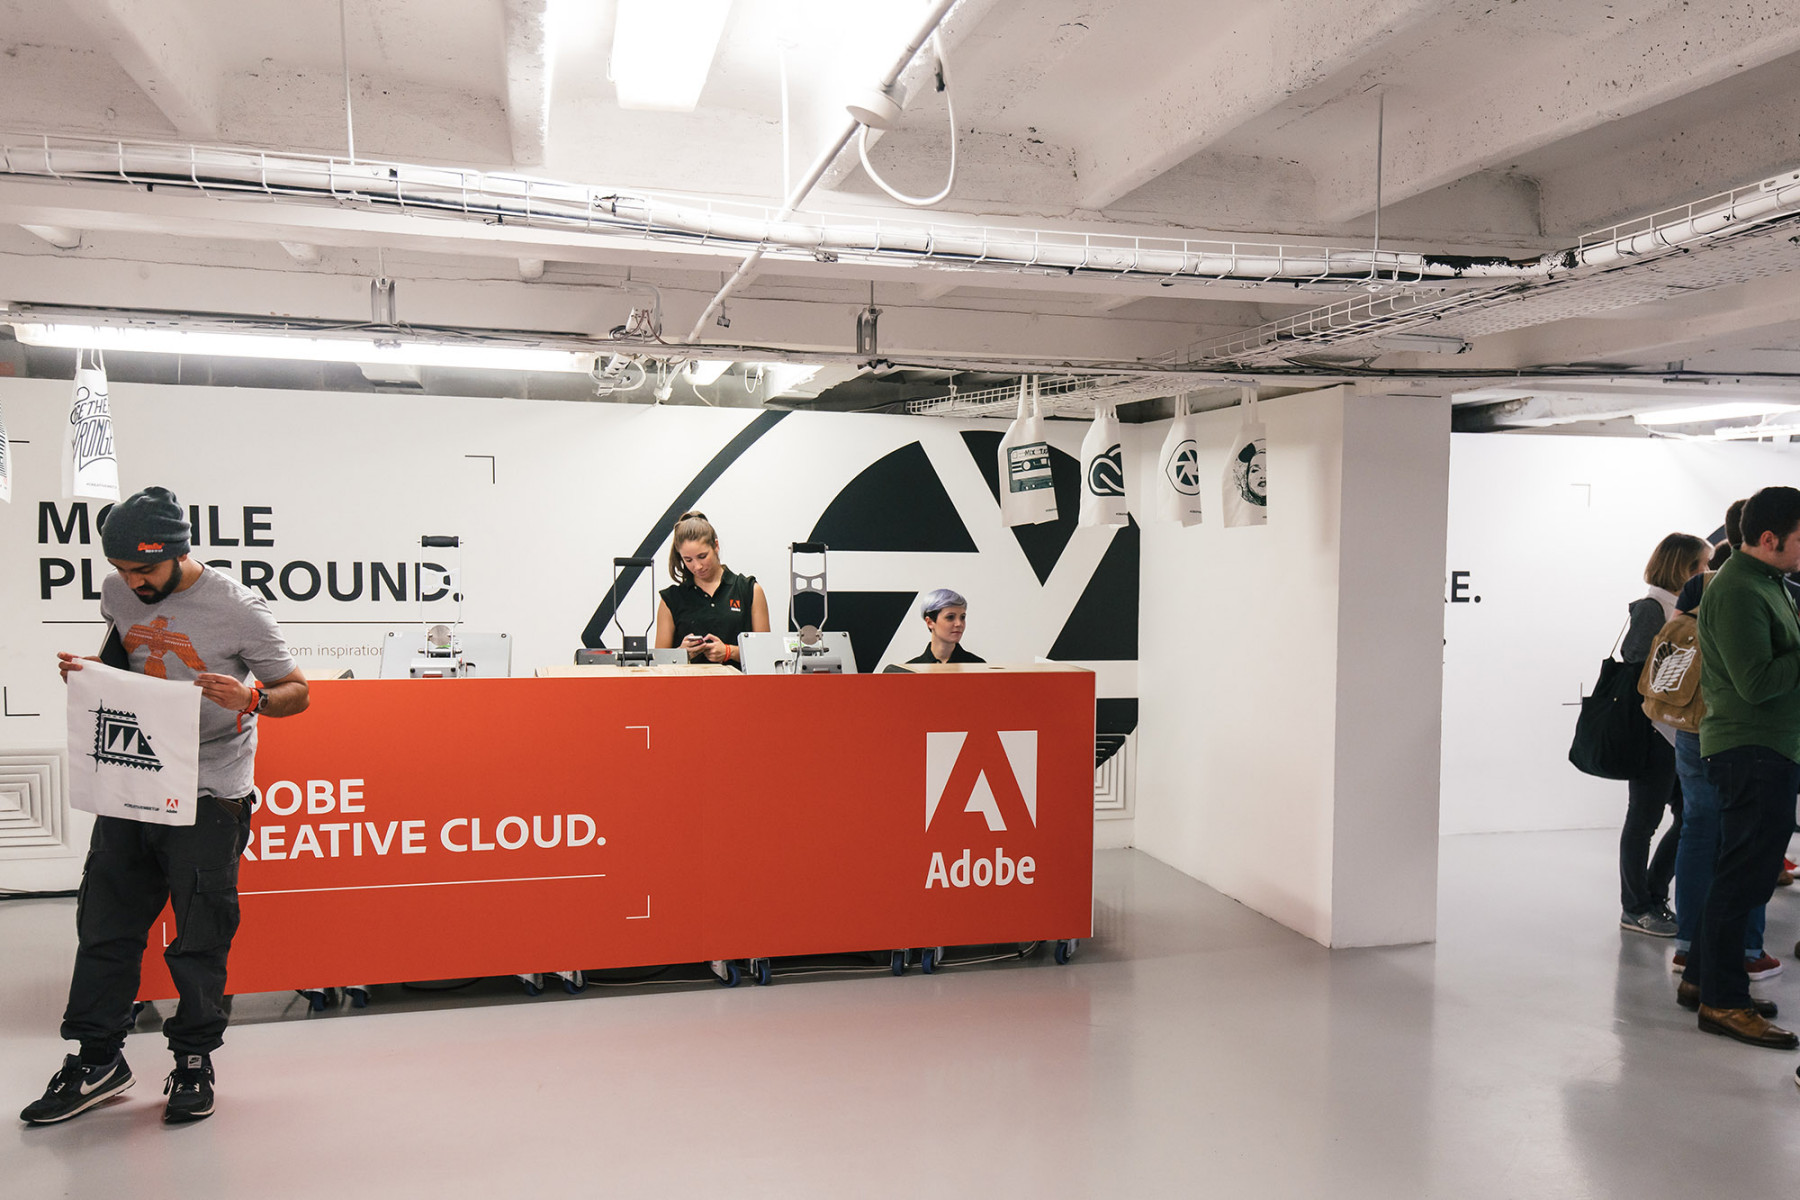 Adobe Creative Cloud Event Printing Desk